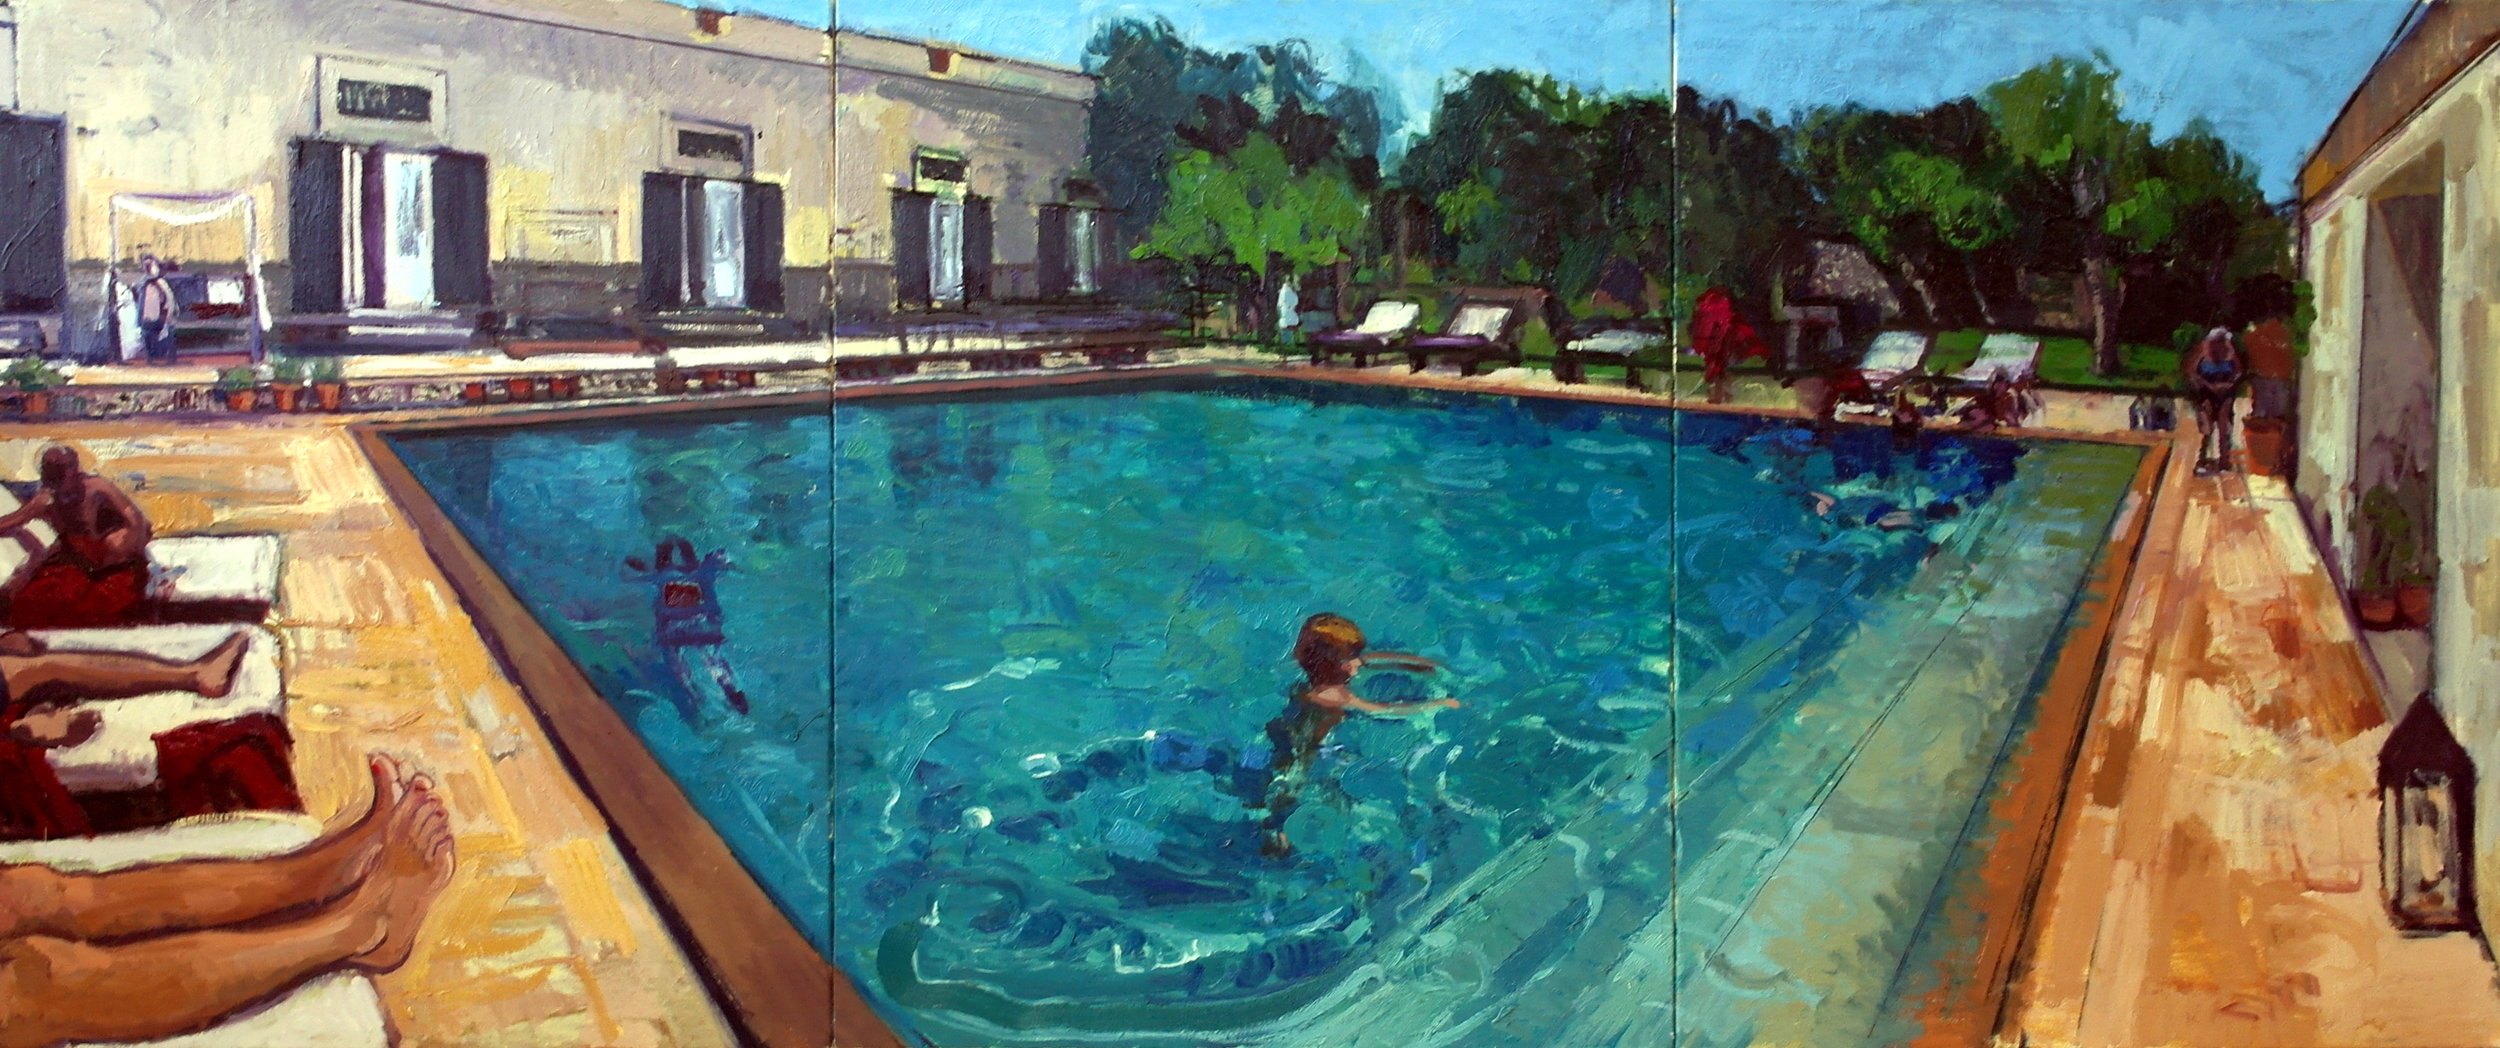 Swimming Pool I